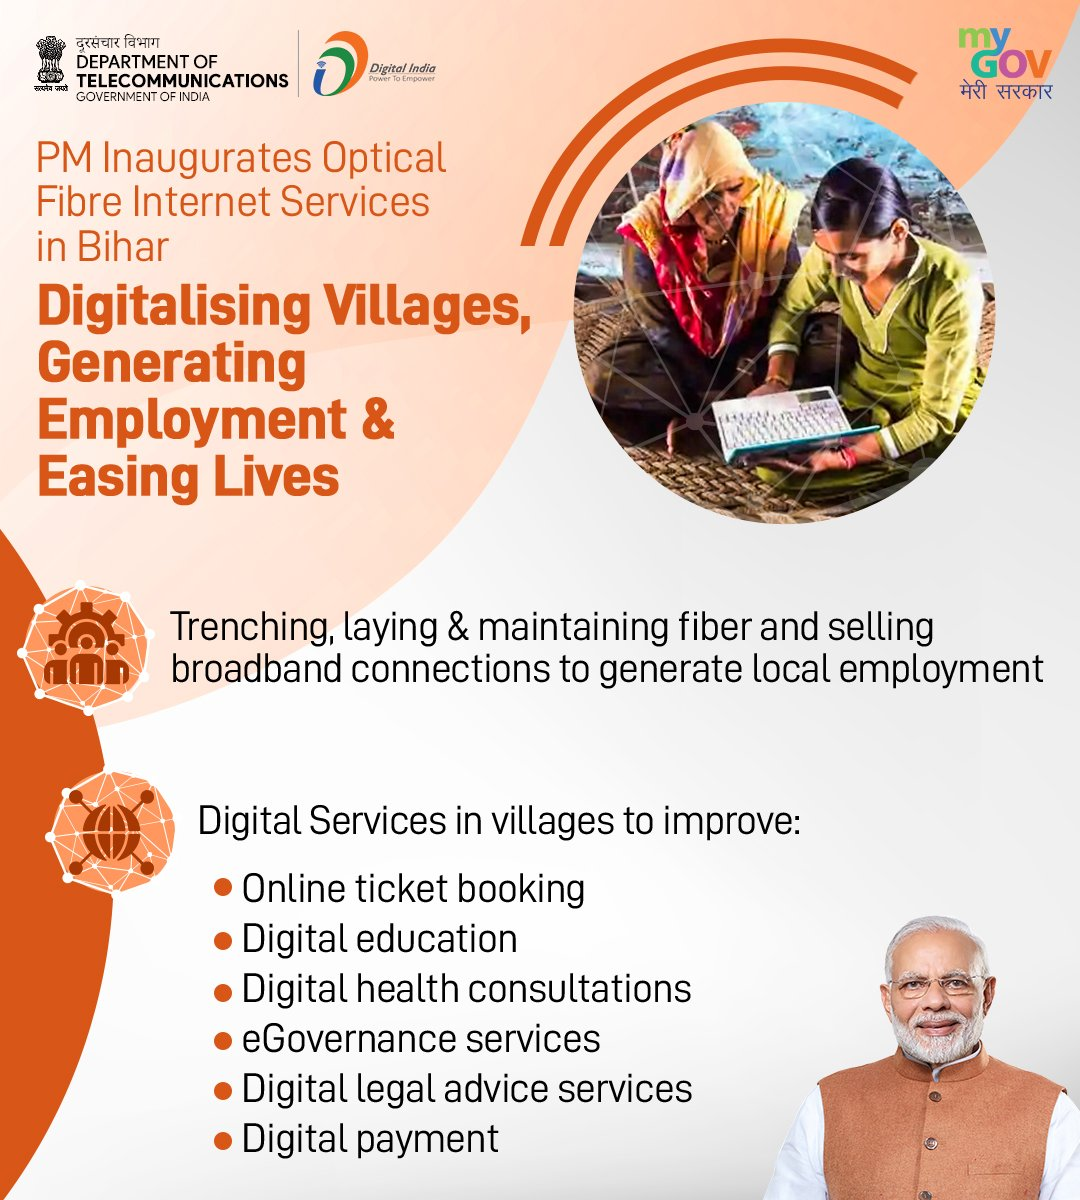 Optical Fibre Internet Services in rural areas of Bihar will bring new employment opportunities in the area of laying and maintenance of optical fibre cables and selling of broadband connections.  Digital delivery of services will also get big boost. #NayeBiharKaNirmaan https://t.co/0vFZU9PmOT